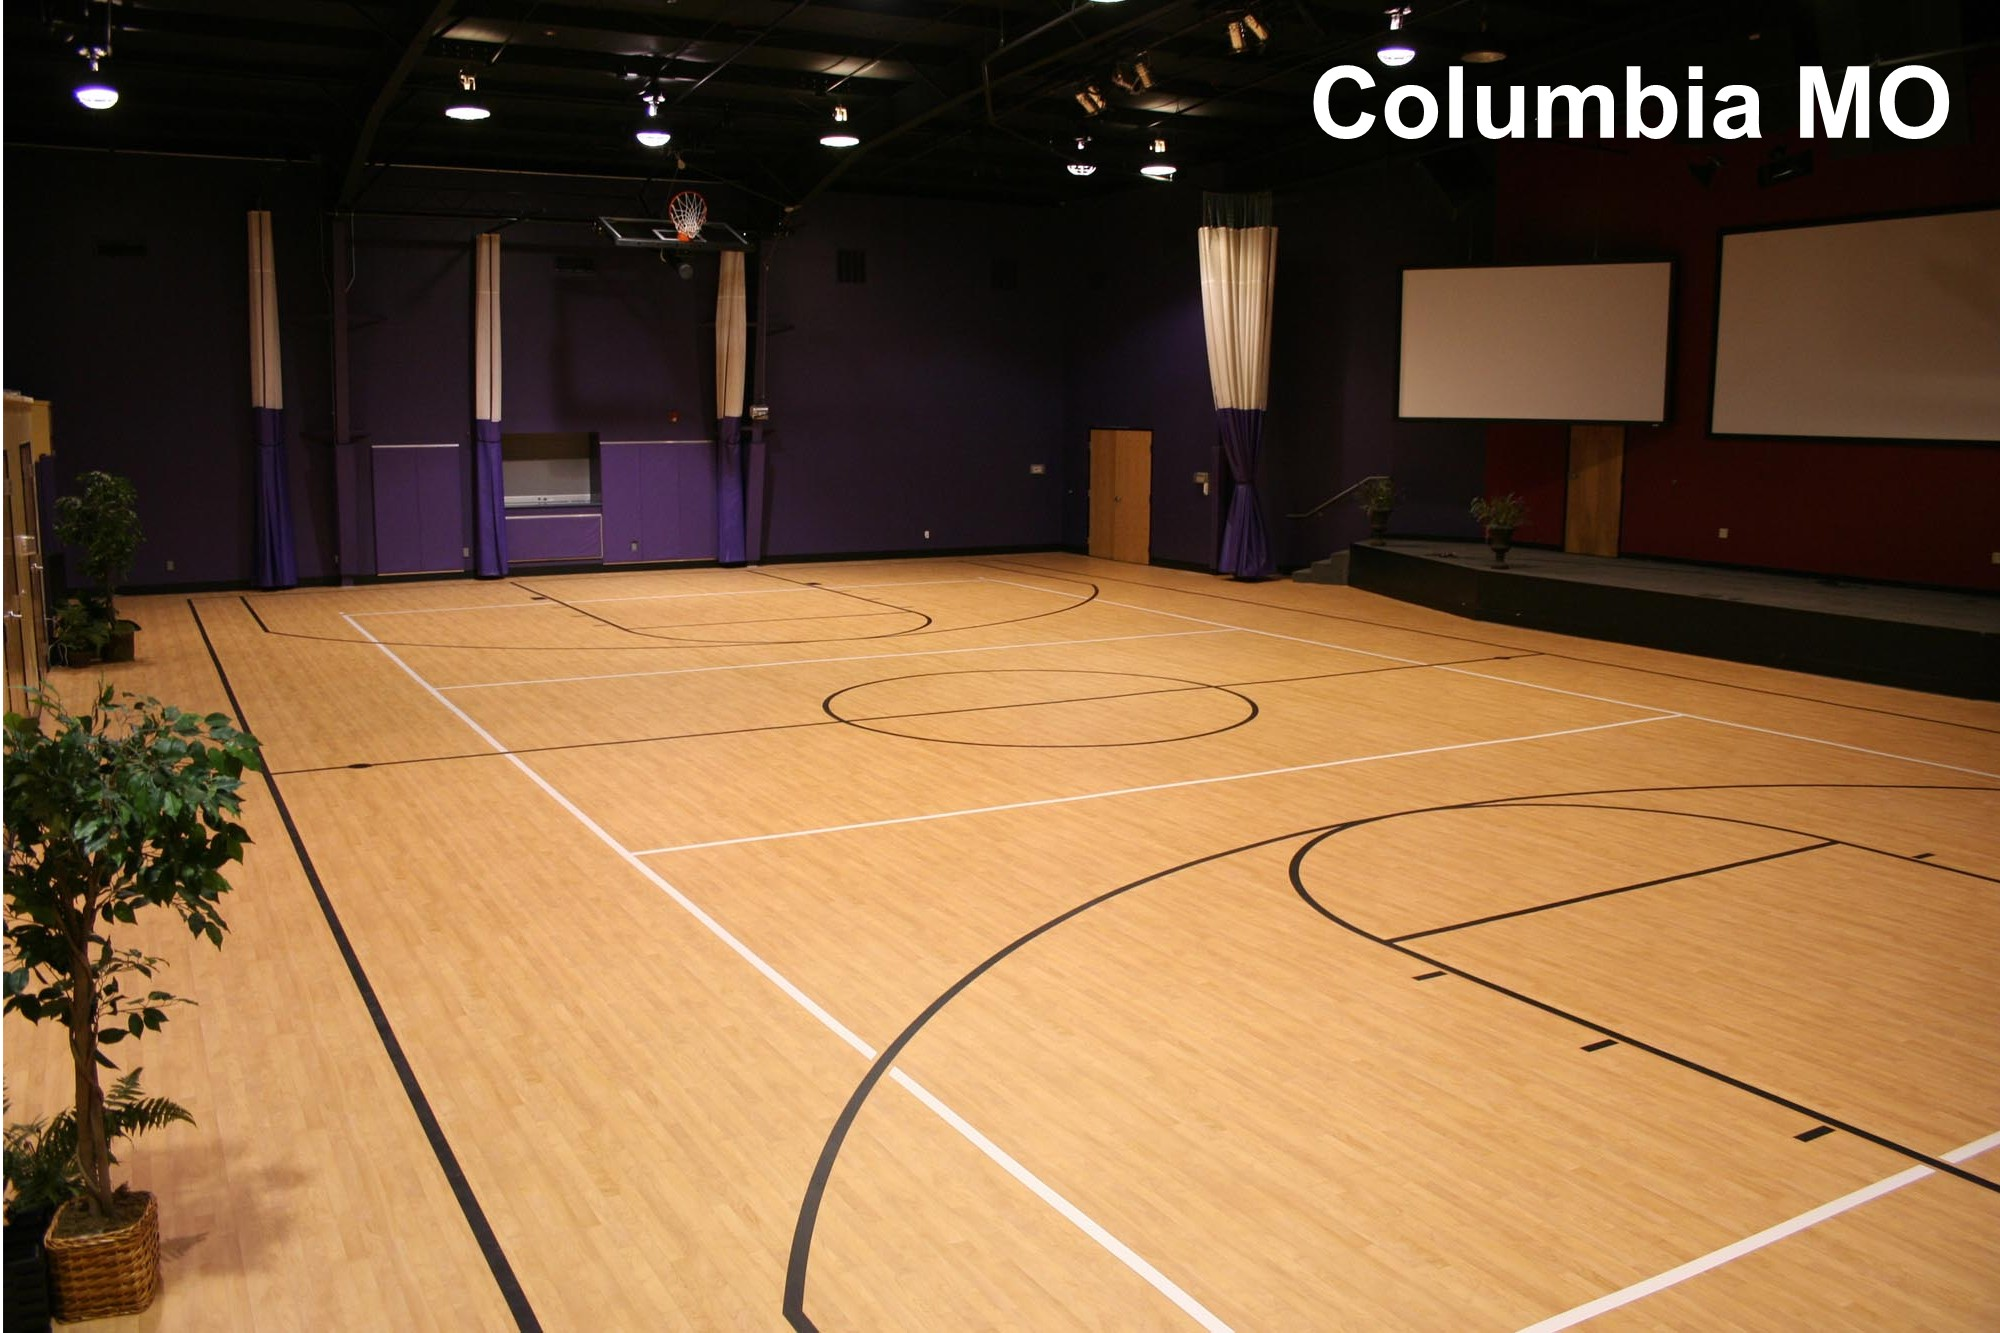 Sport Court Flooring | Church Depot - FREE Estimate 1-855-739-7372